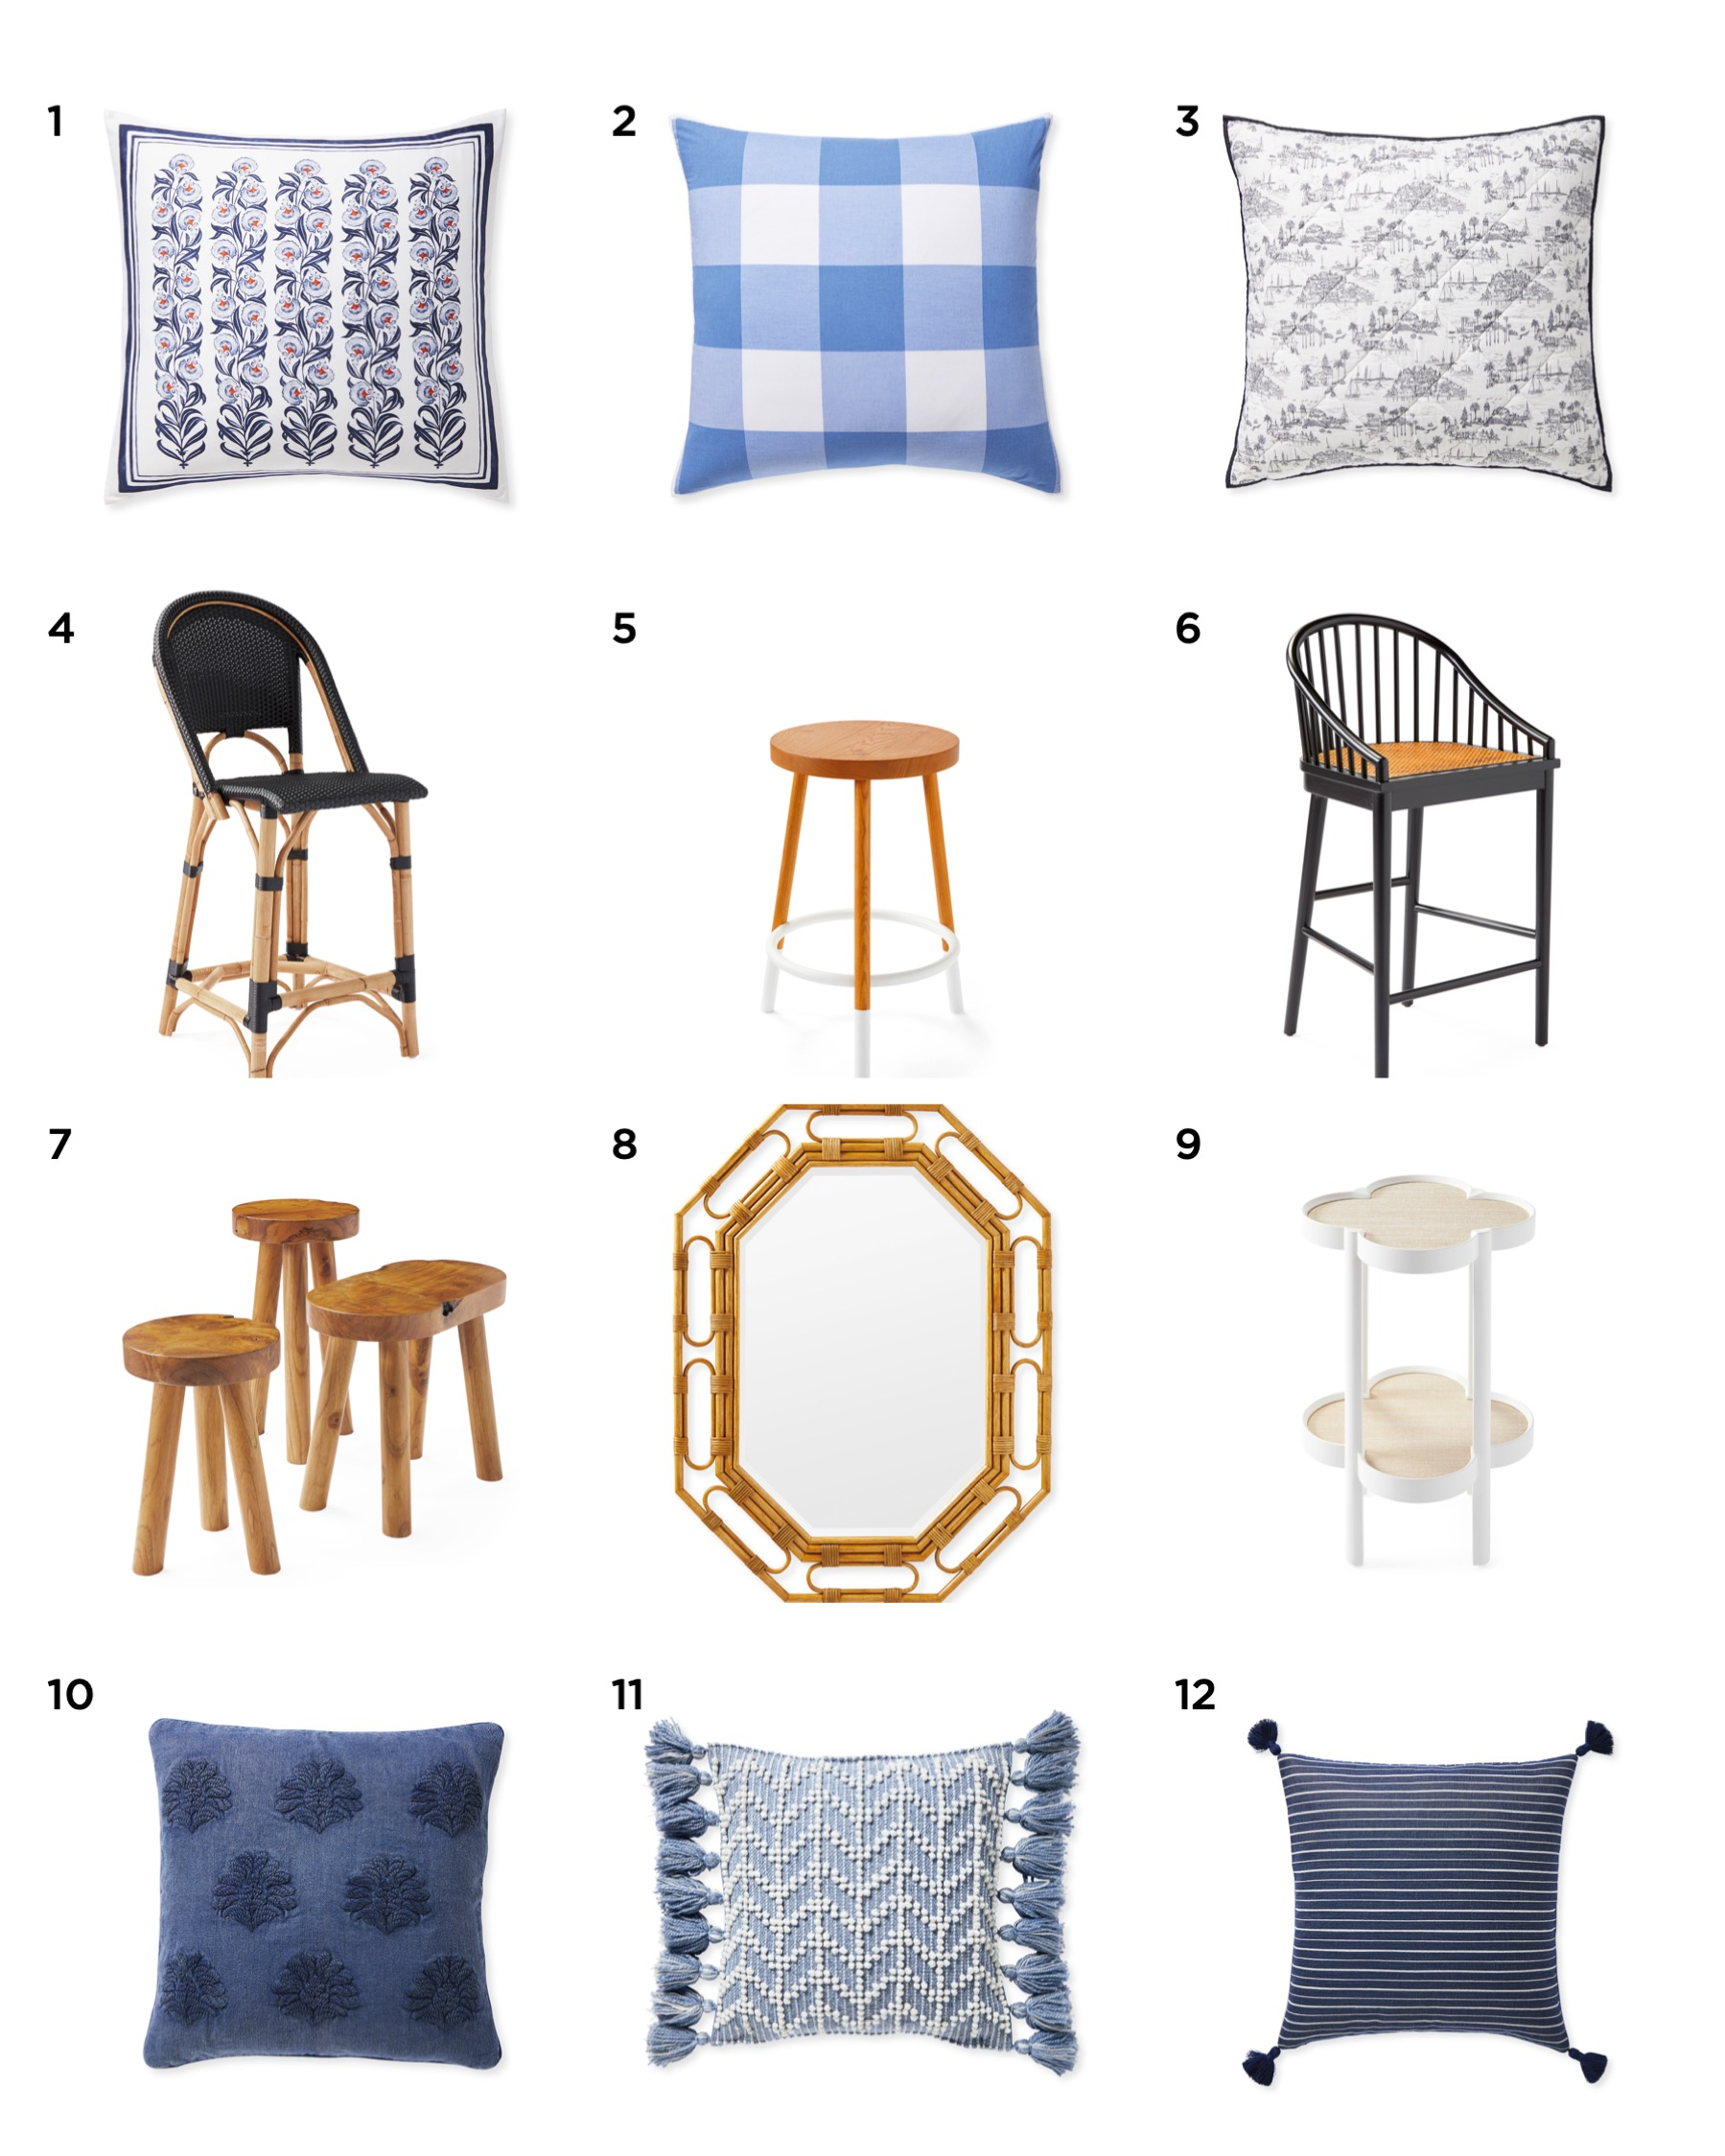 Serena & Lily Spring Arrivals | Refreshing Your Home for the New Year | Louella Reese